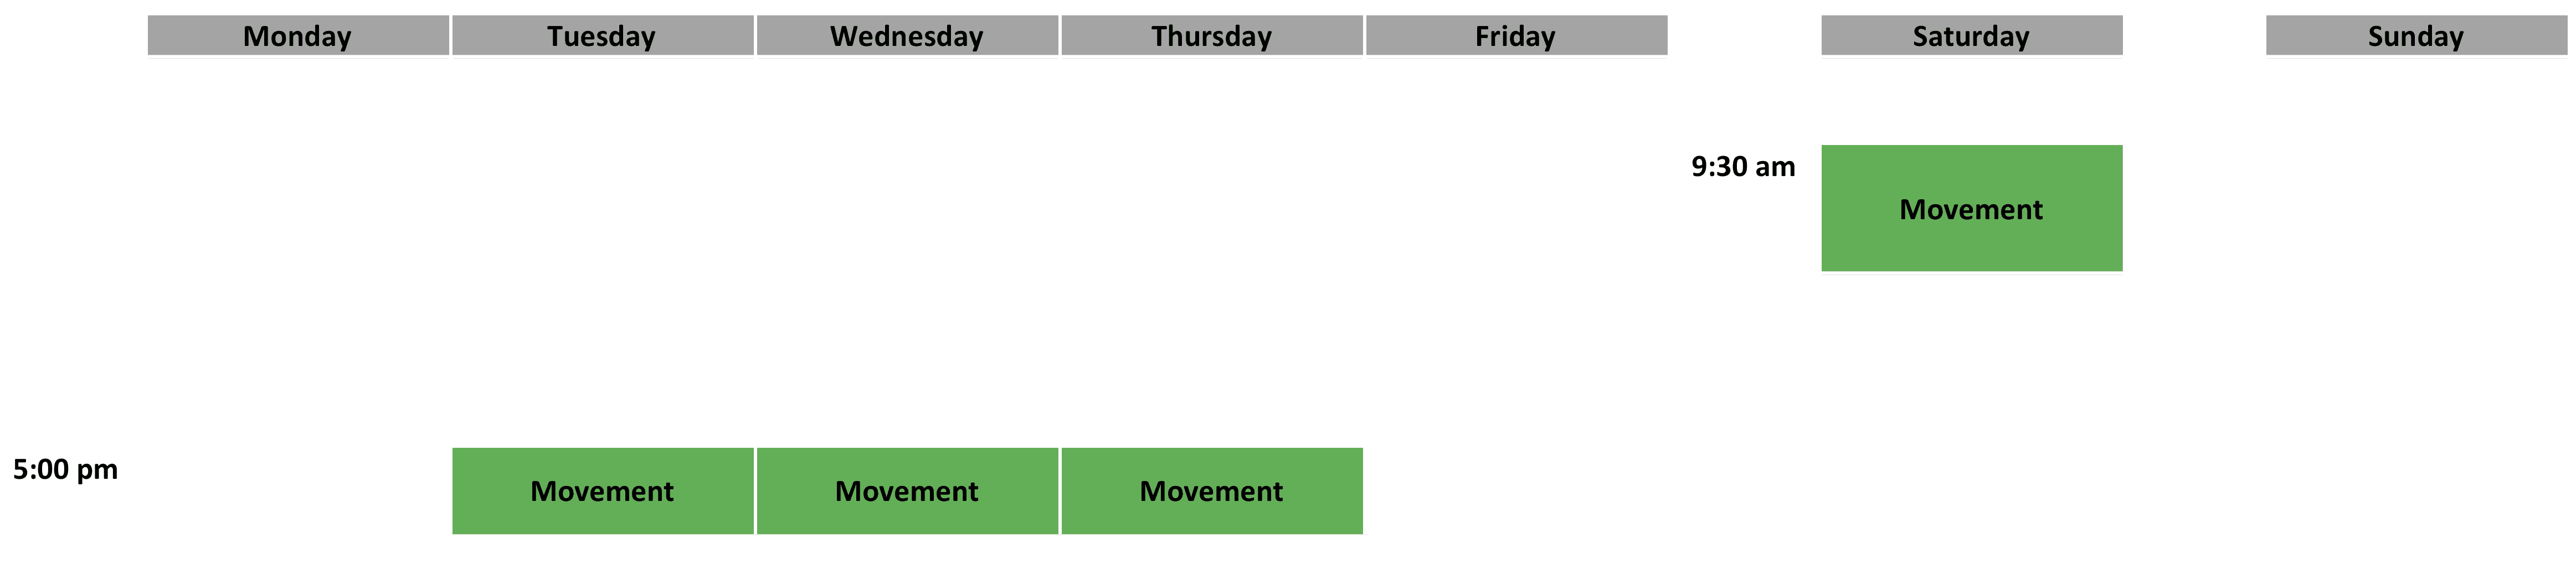 Movement Schedule - April 2019